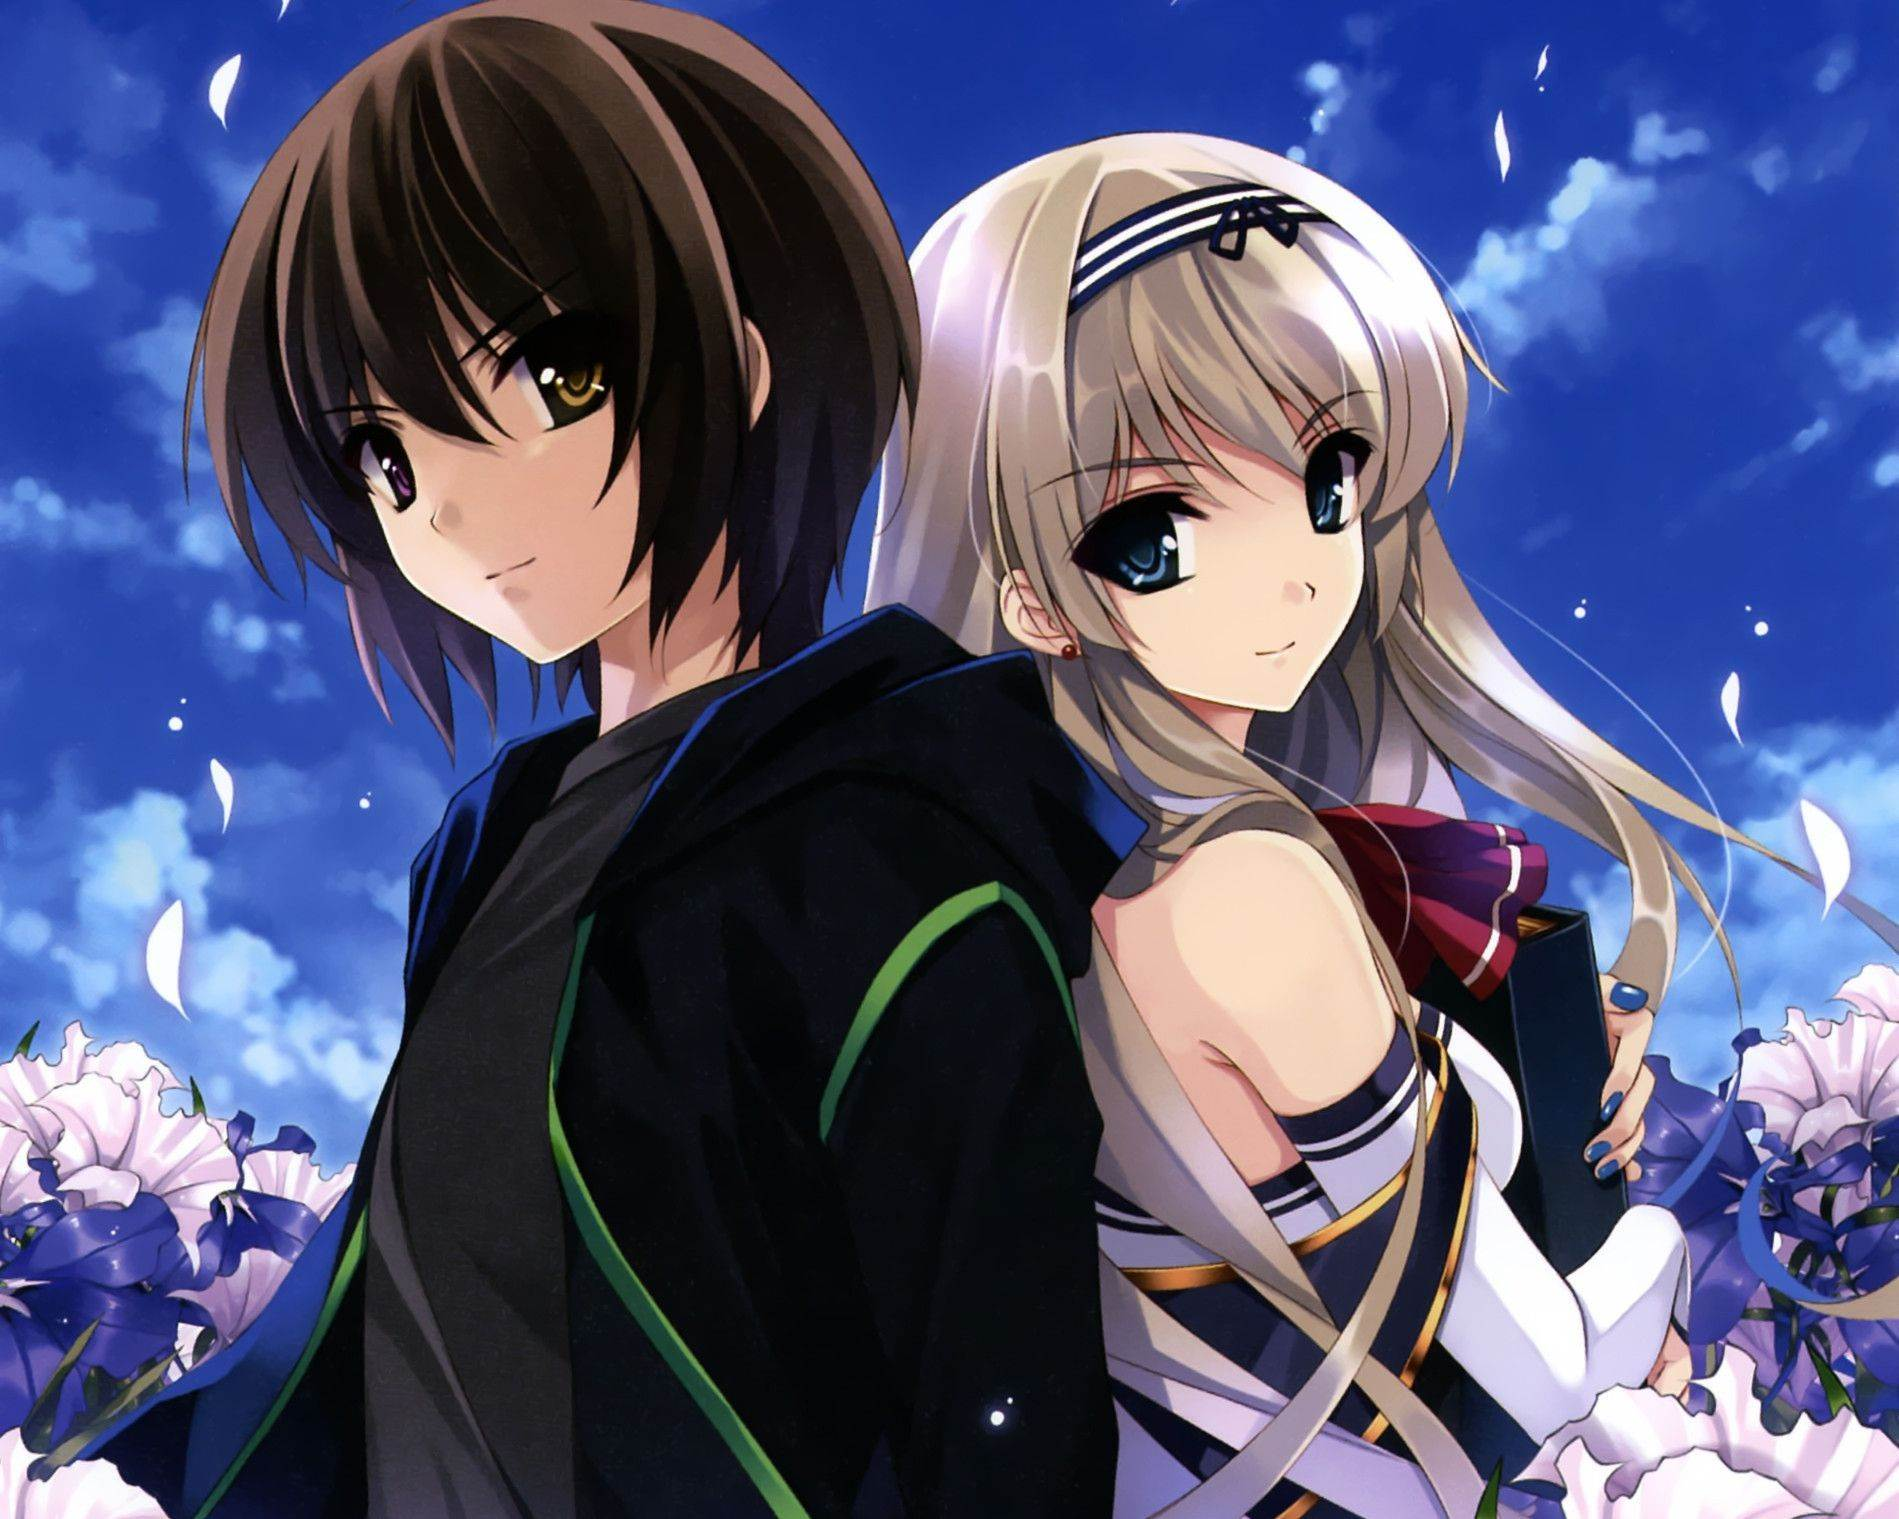 Cute Anime Wallpapers HD (70 Wallpapers) - Adorable Wallpapers